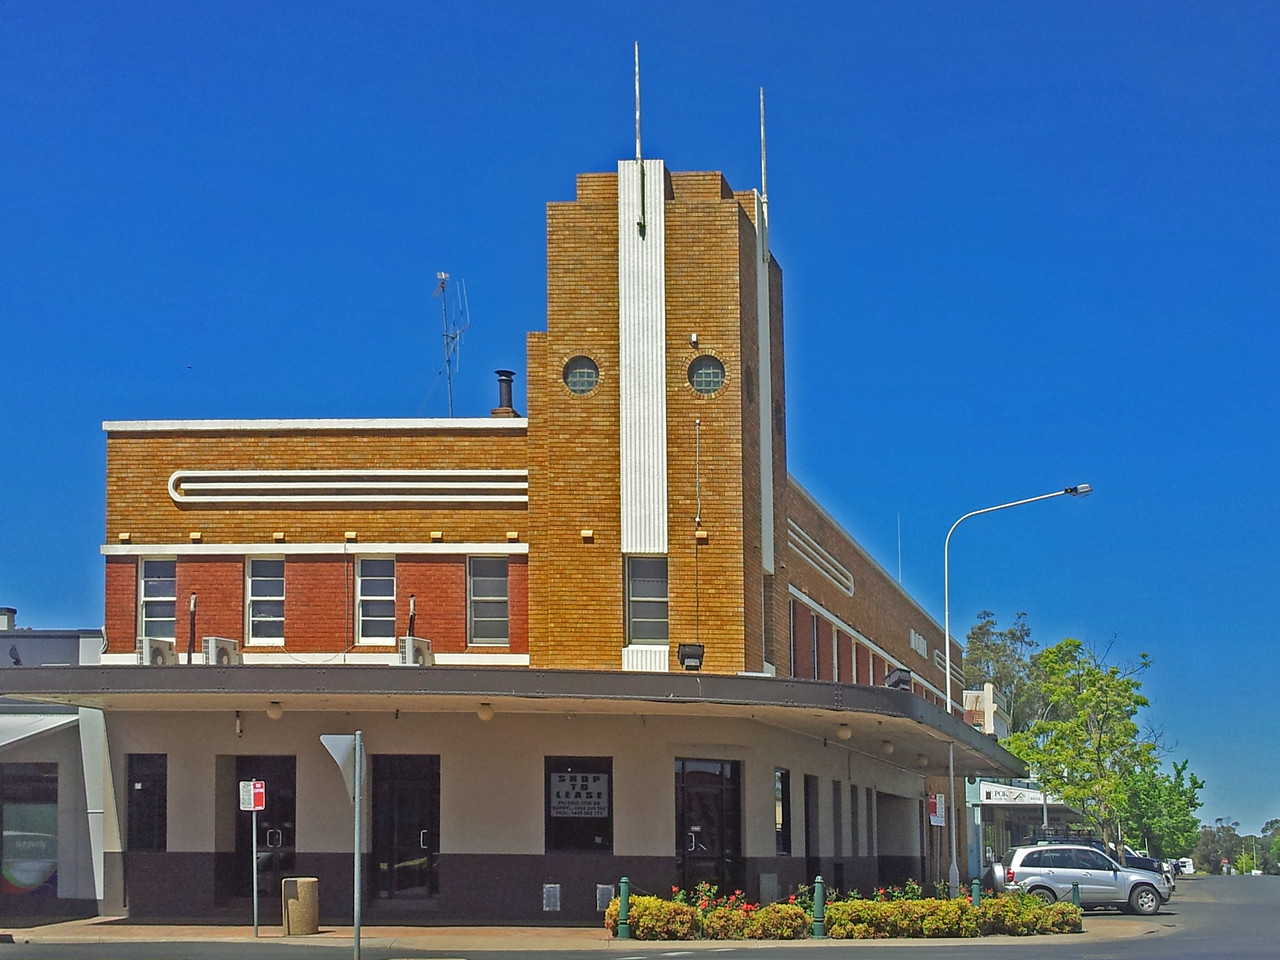 16 October 2013: Former hotel, Forbes, New South Wales.